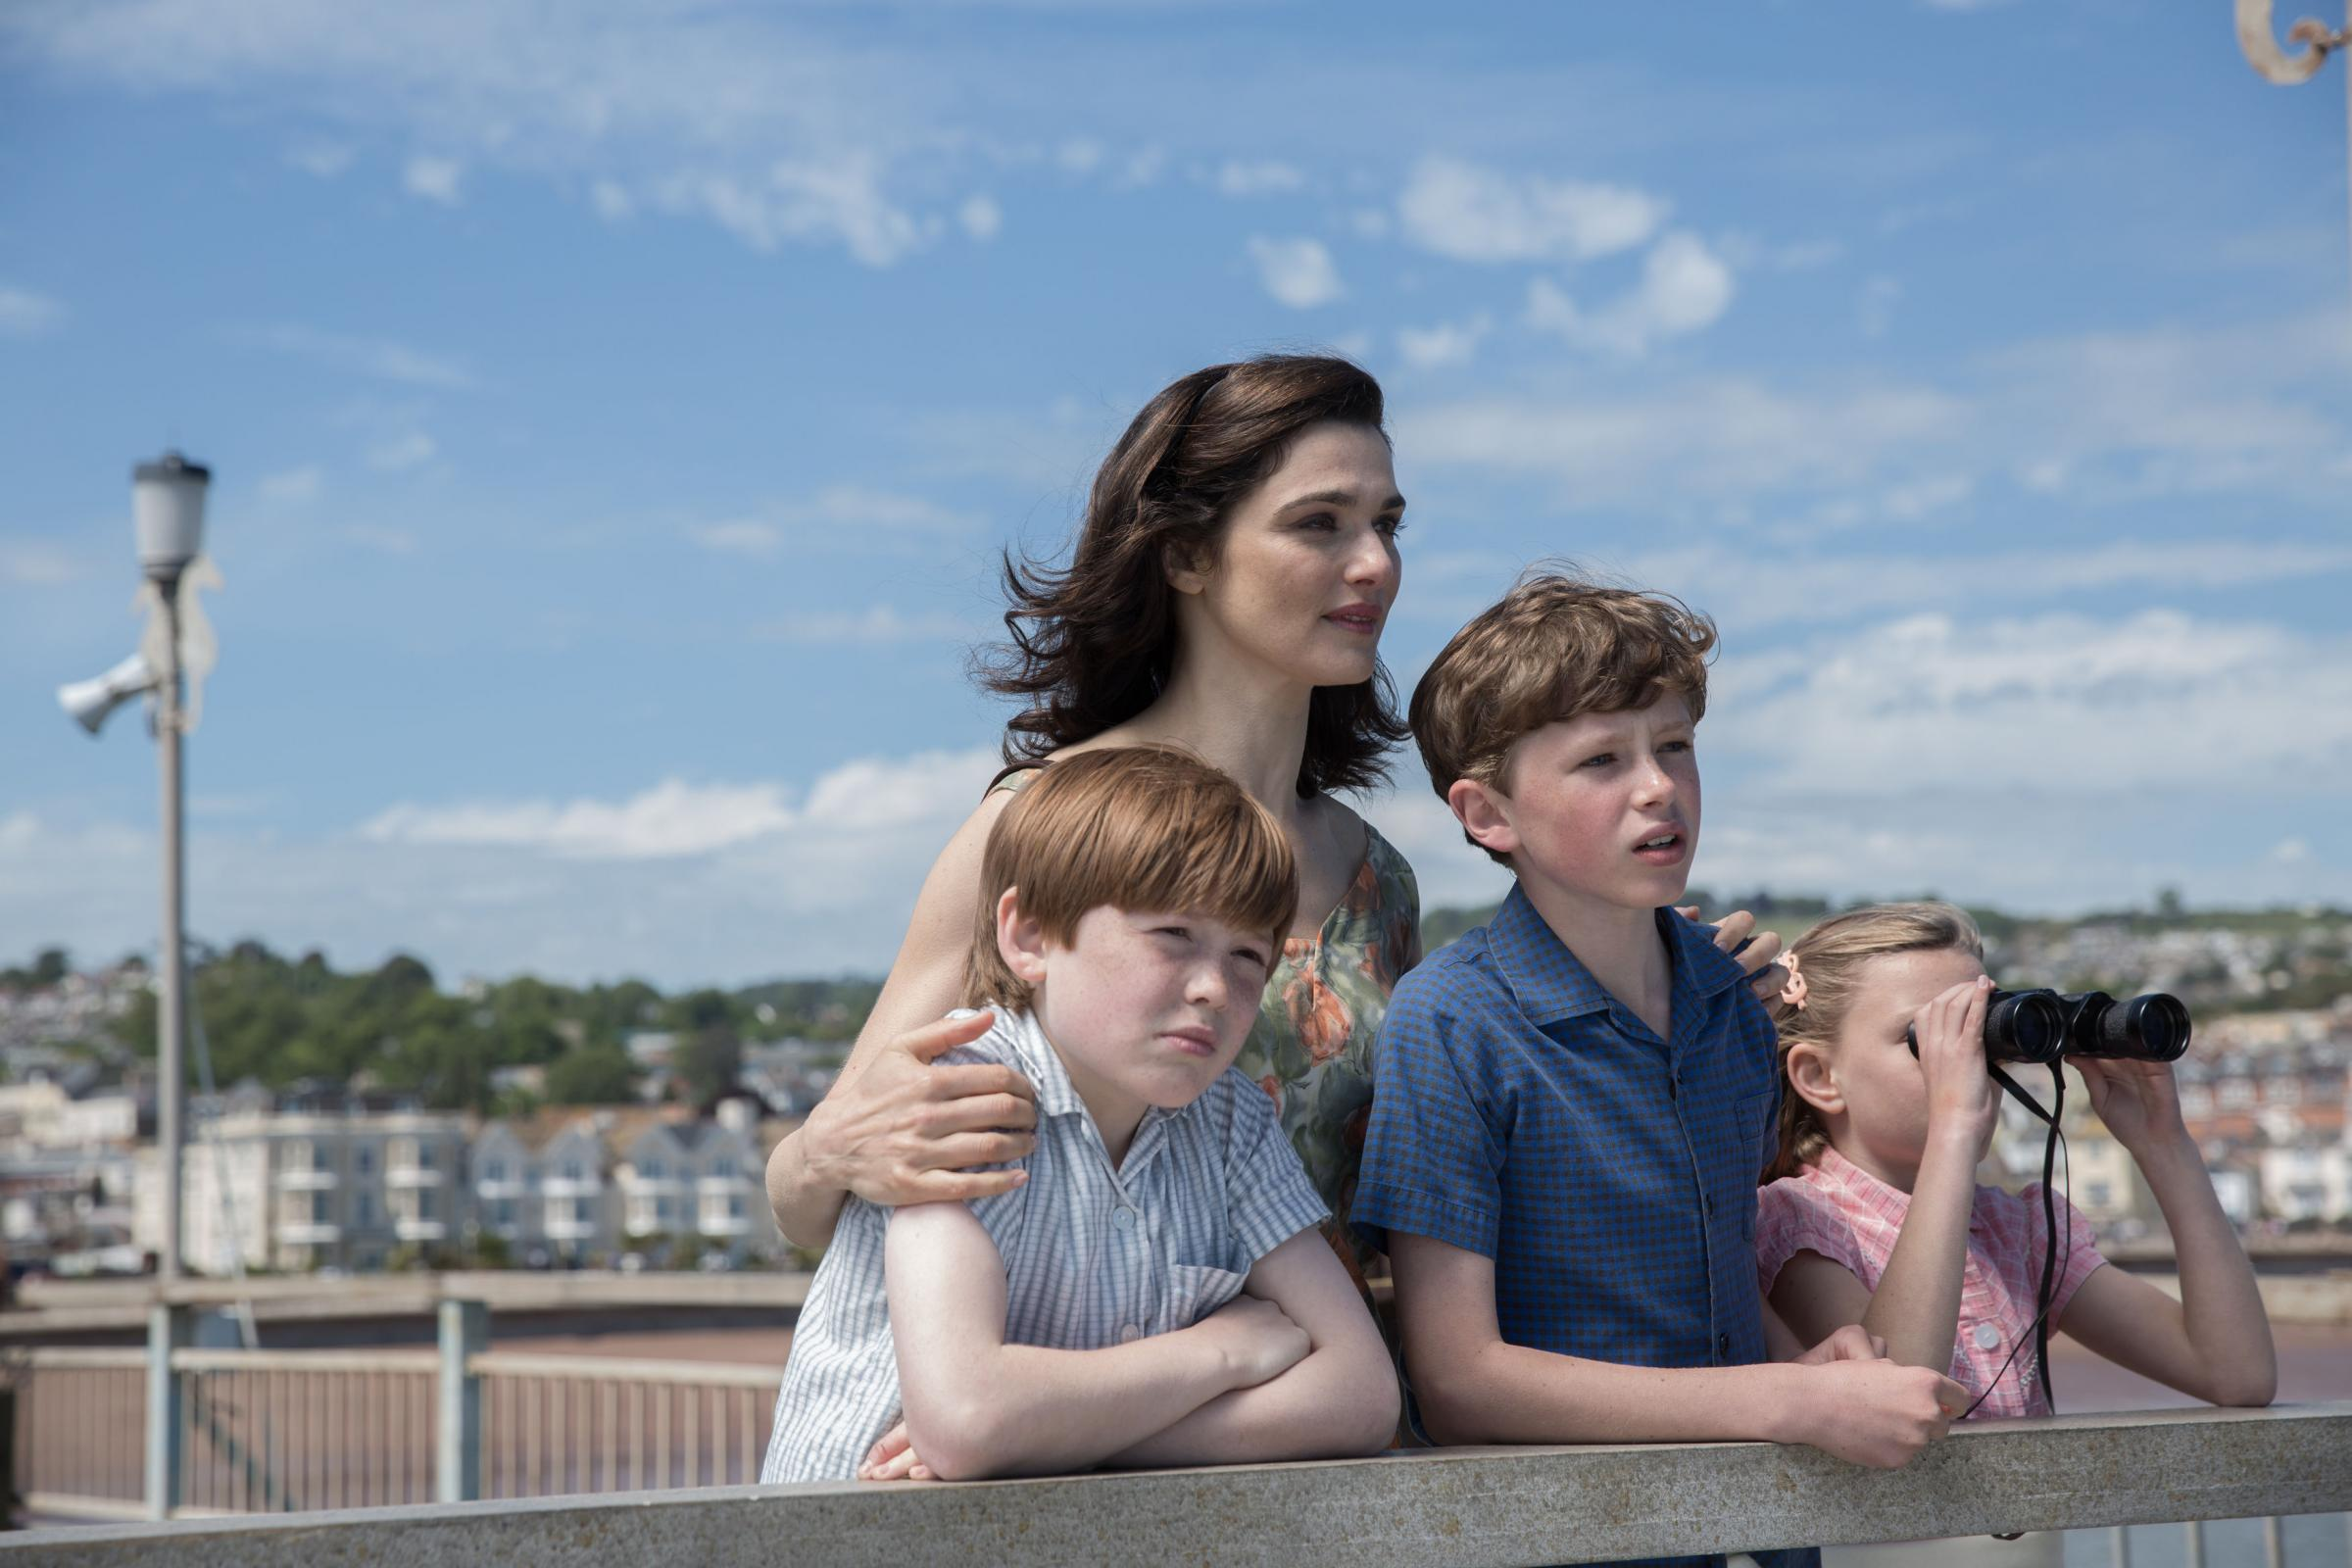 From left: Kit Connor as Roger Crowhurst, Rachel Weisz as Clare Crowhurst, Finn Elliot as James Crowhurst and Eleanor Stagg as Rachel Crowhurst